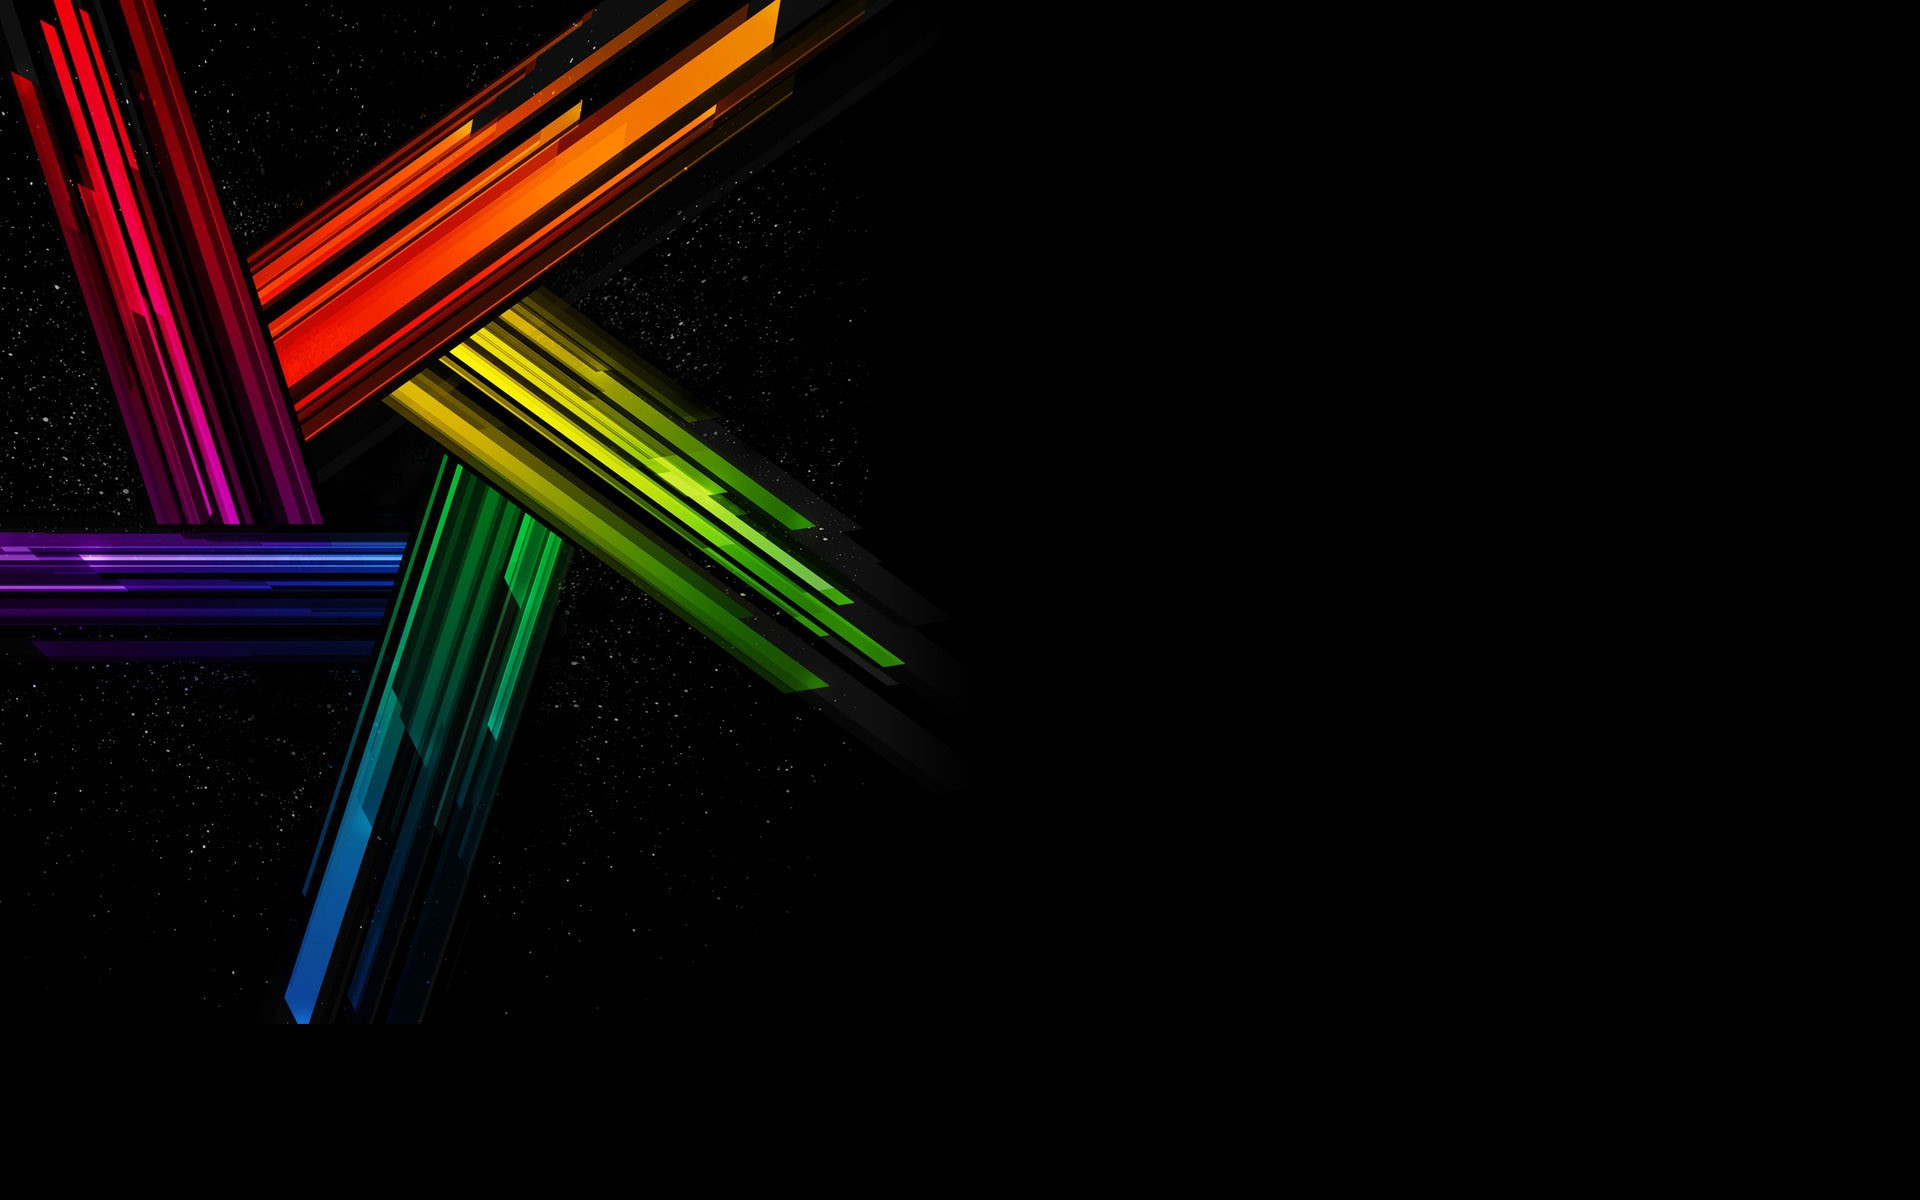 Abstract Hd Line Neon Wallpaper Xpx 1920x1200px